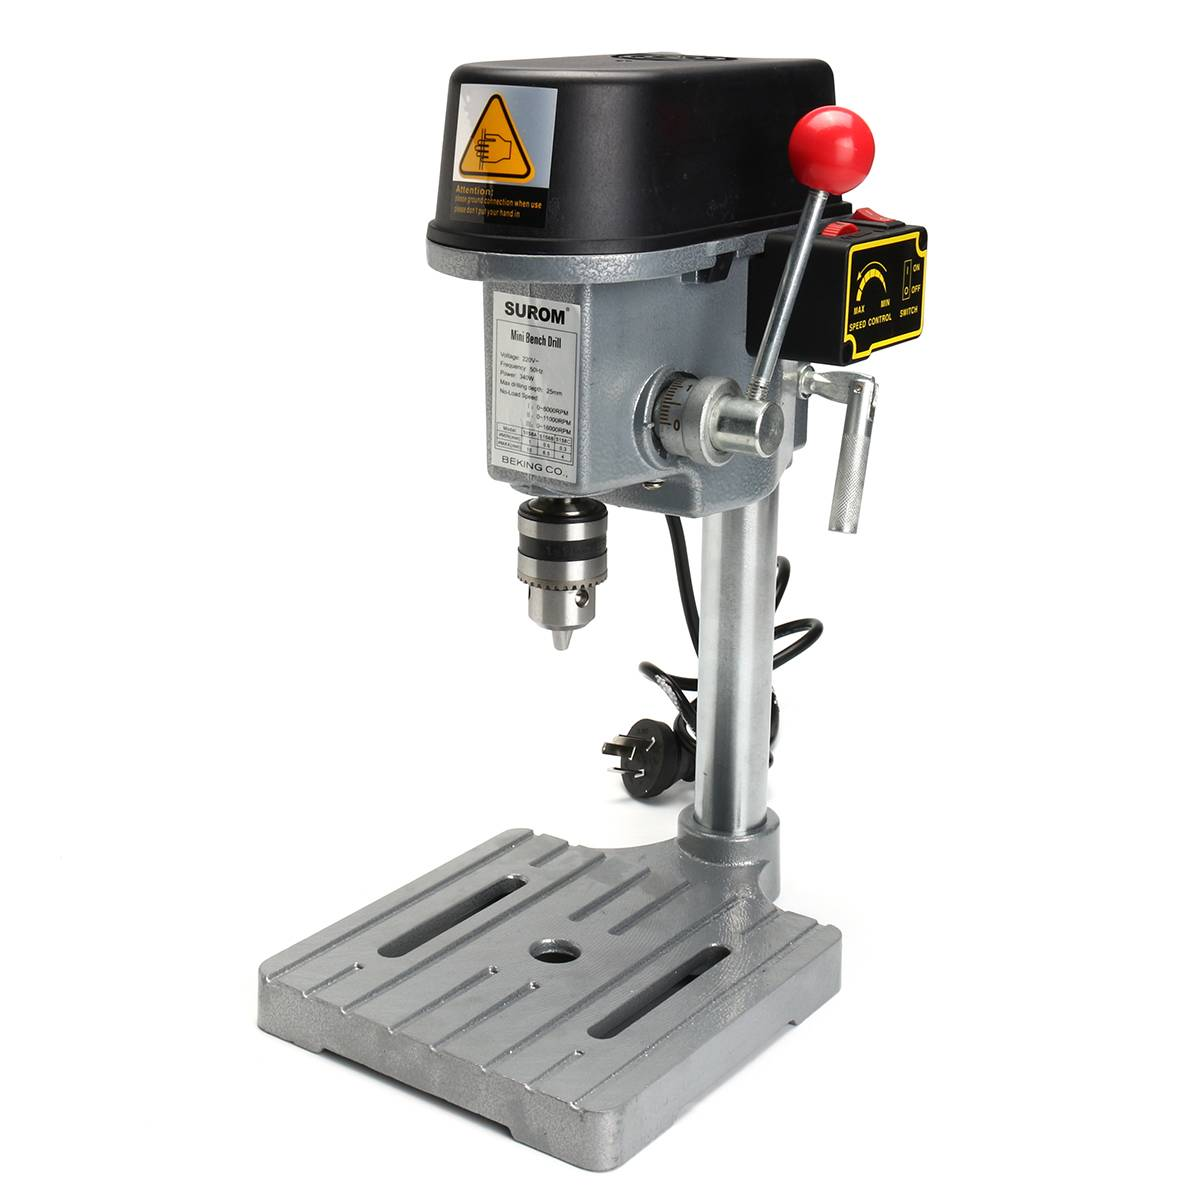 340W 220V 16000rpm Electric Drill Press Workbench Multifunction Mini Woodworking Machine Tools Home DIY Power Tools 1mm~10mm